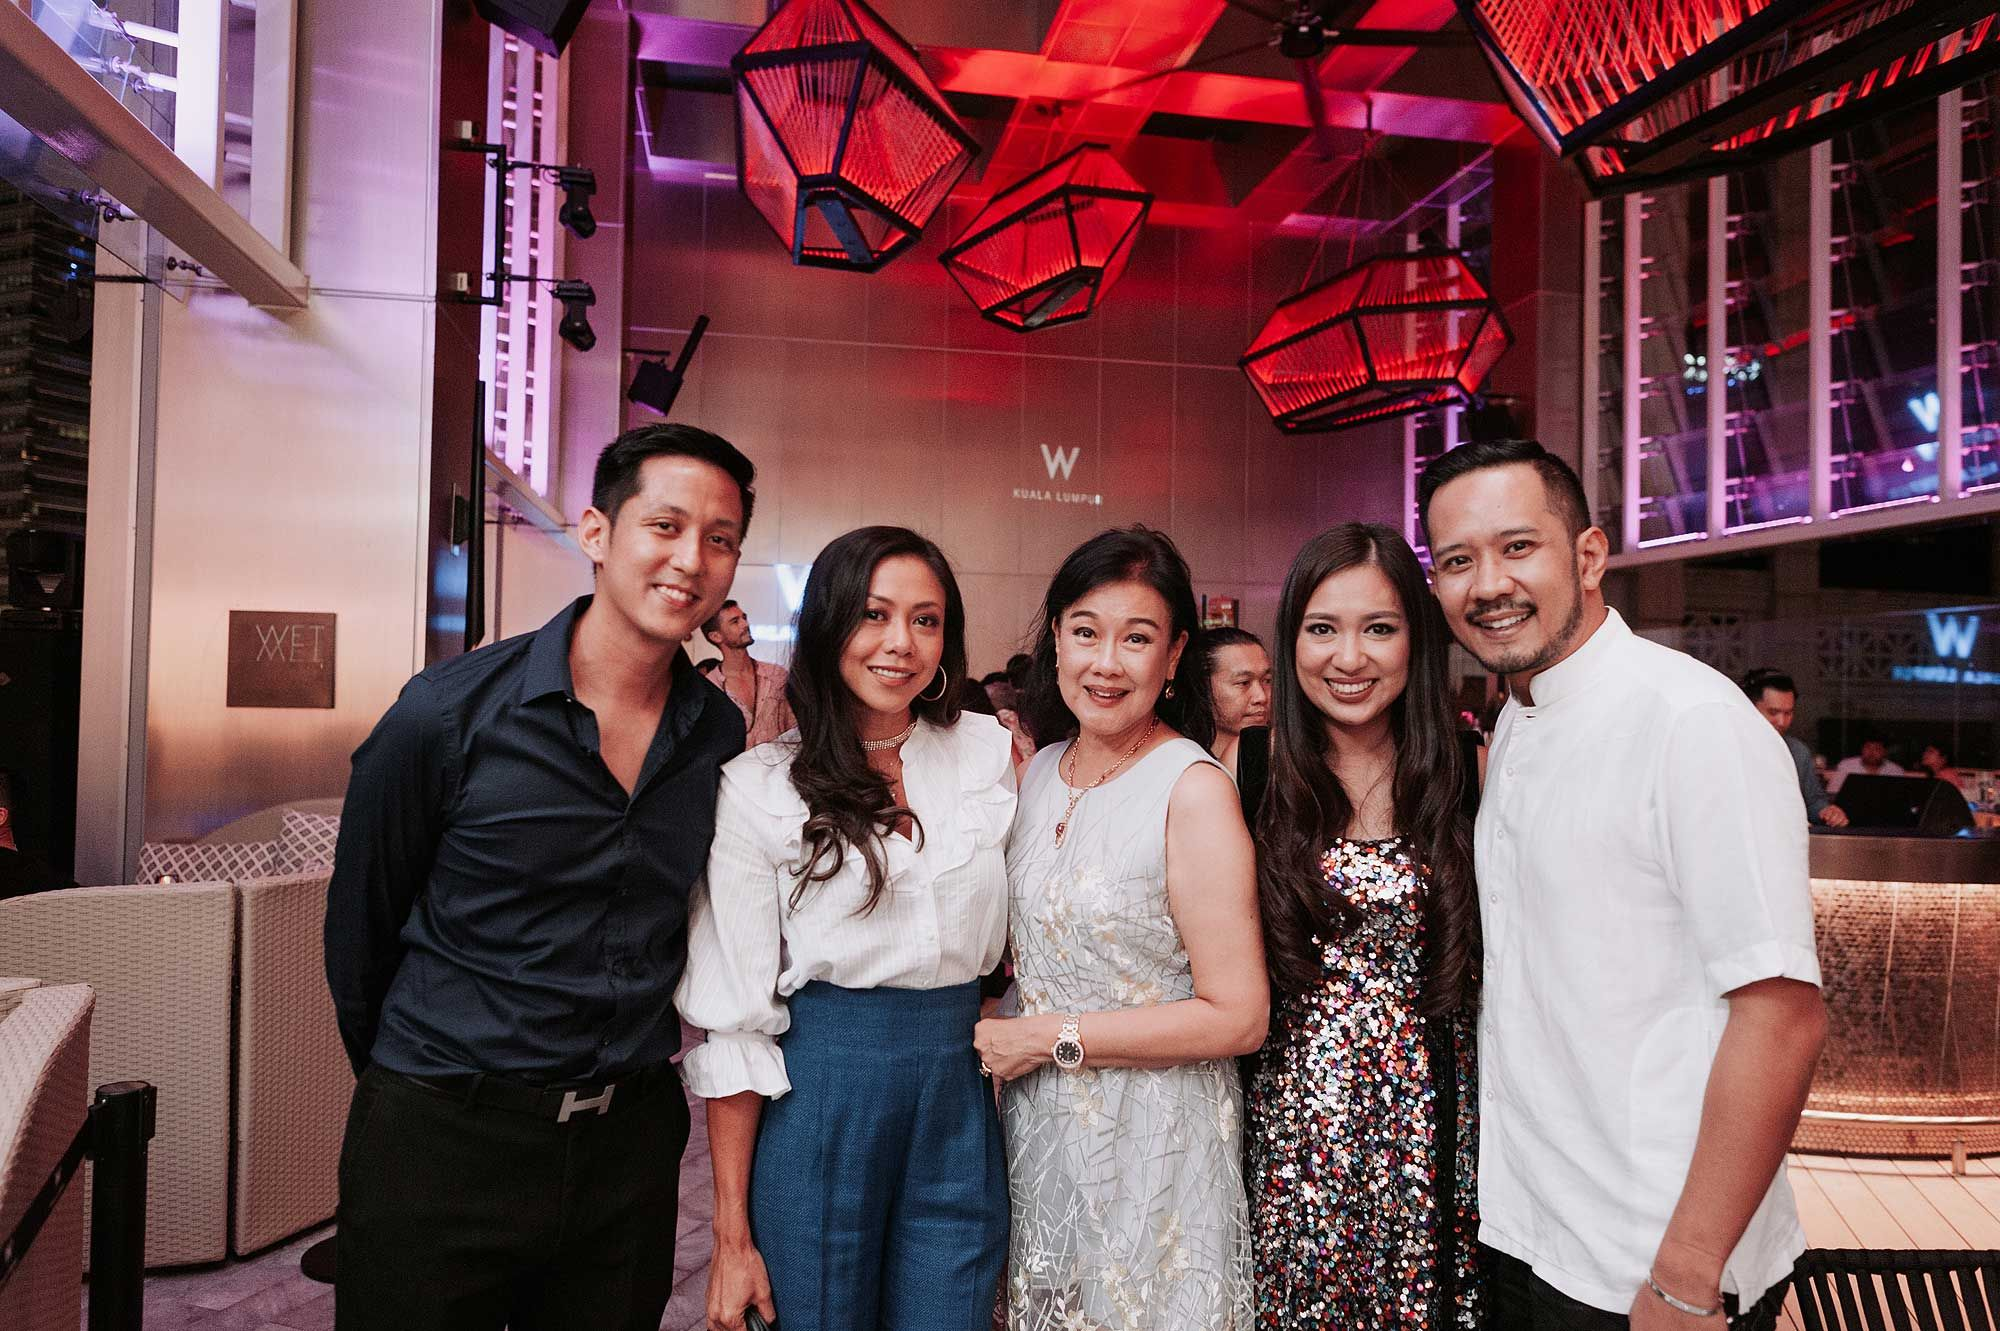 Jared Ang, Datin Sabrena Dani, Puan Sri Ivy Tan, Datin Yvette Kang and Datuk Wira Dani